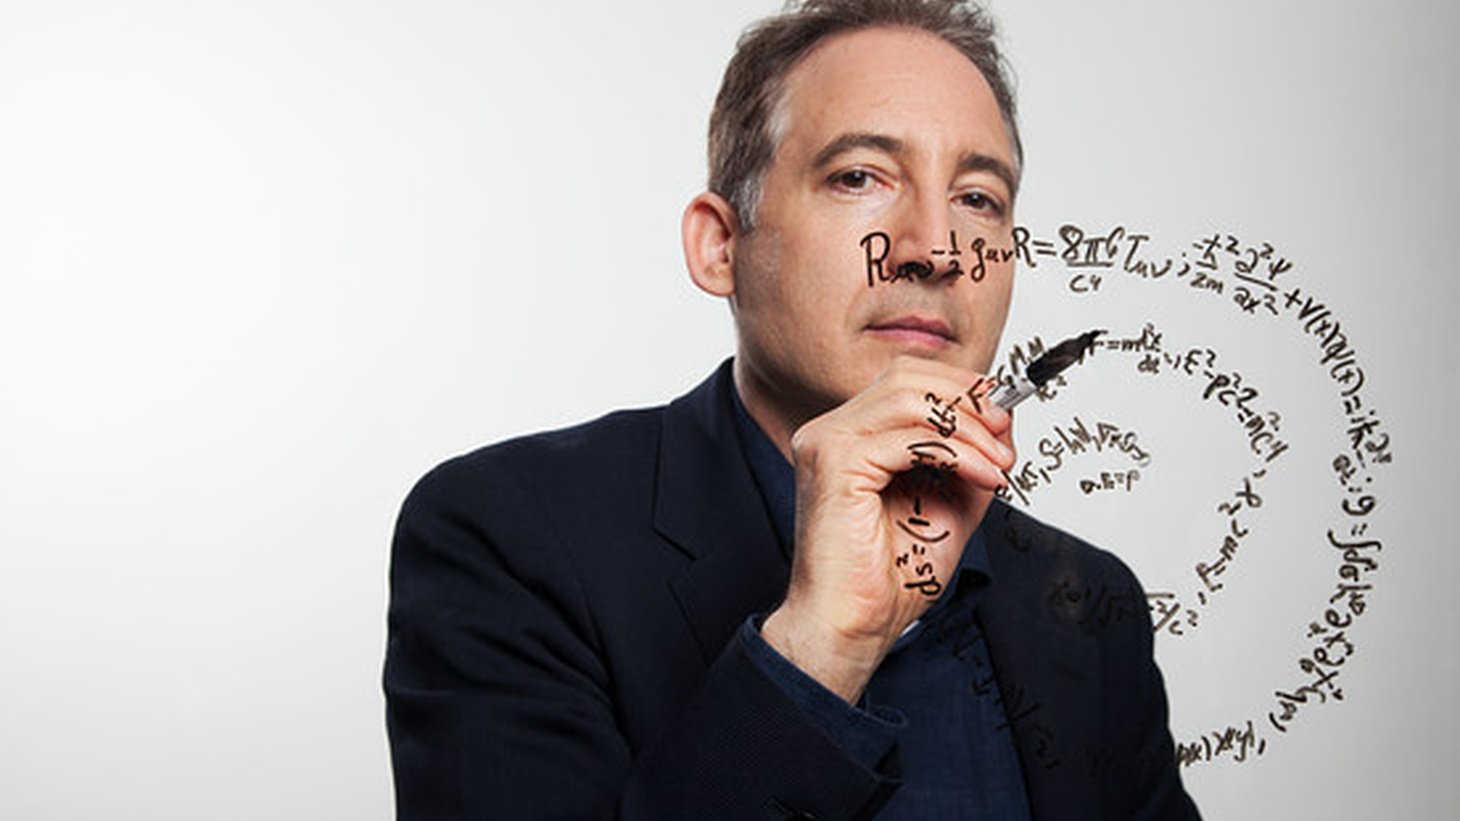 Brian Greene says that when he was in college, his mentor said that he (the mentor) did mathematics because once a theorem is proven in math, it'll be permanently true.